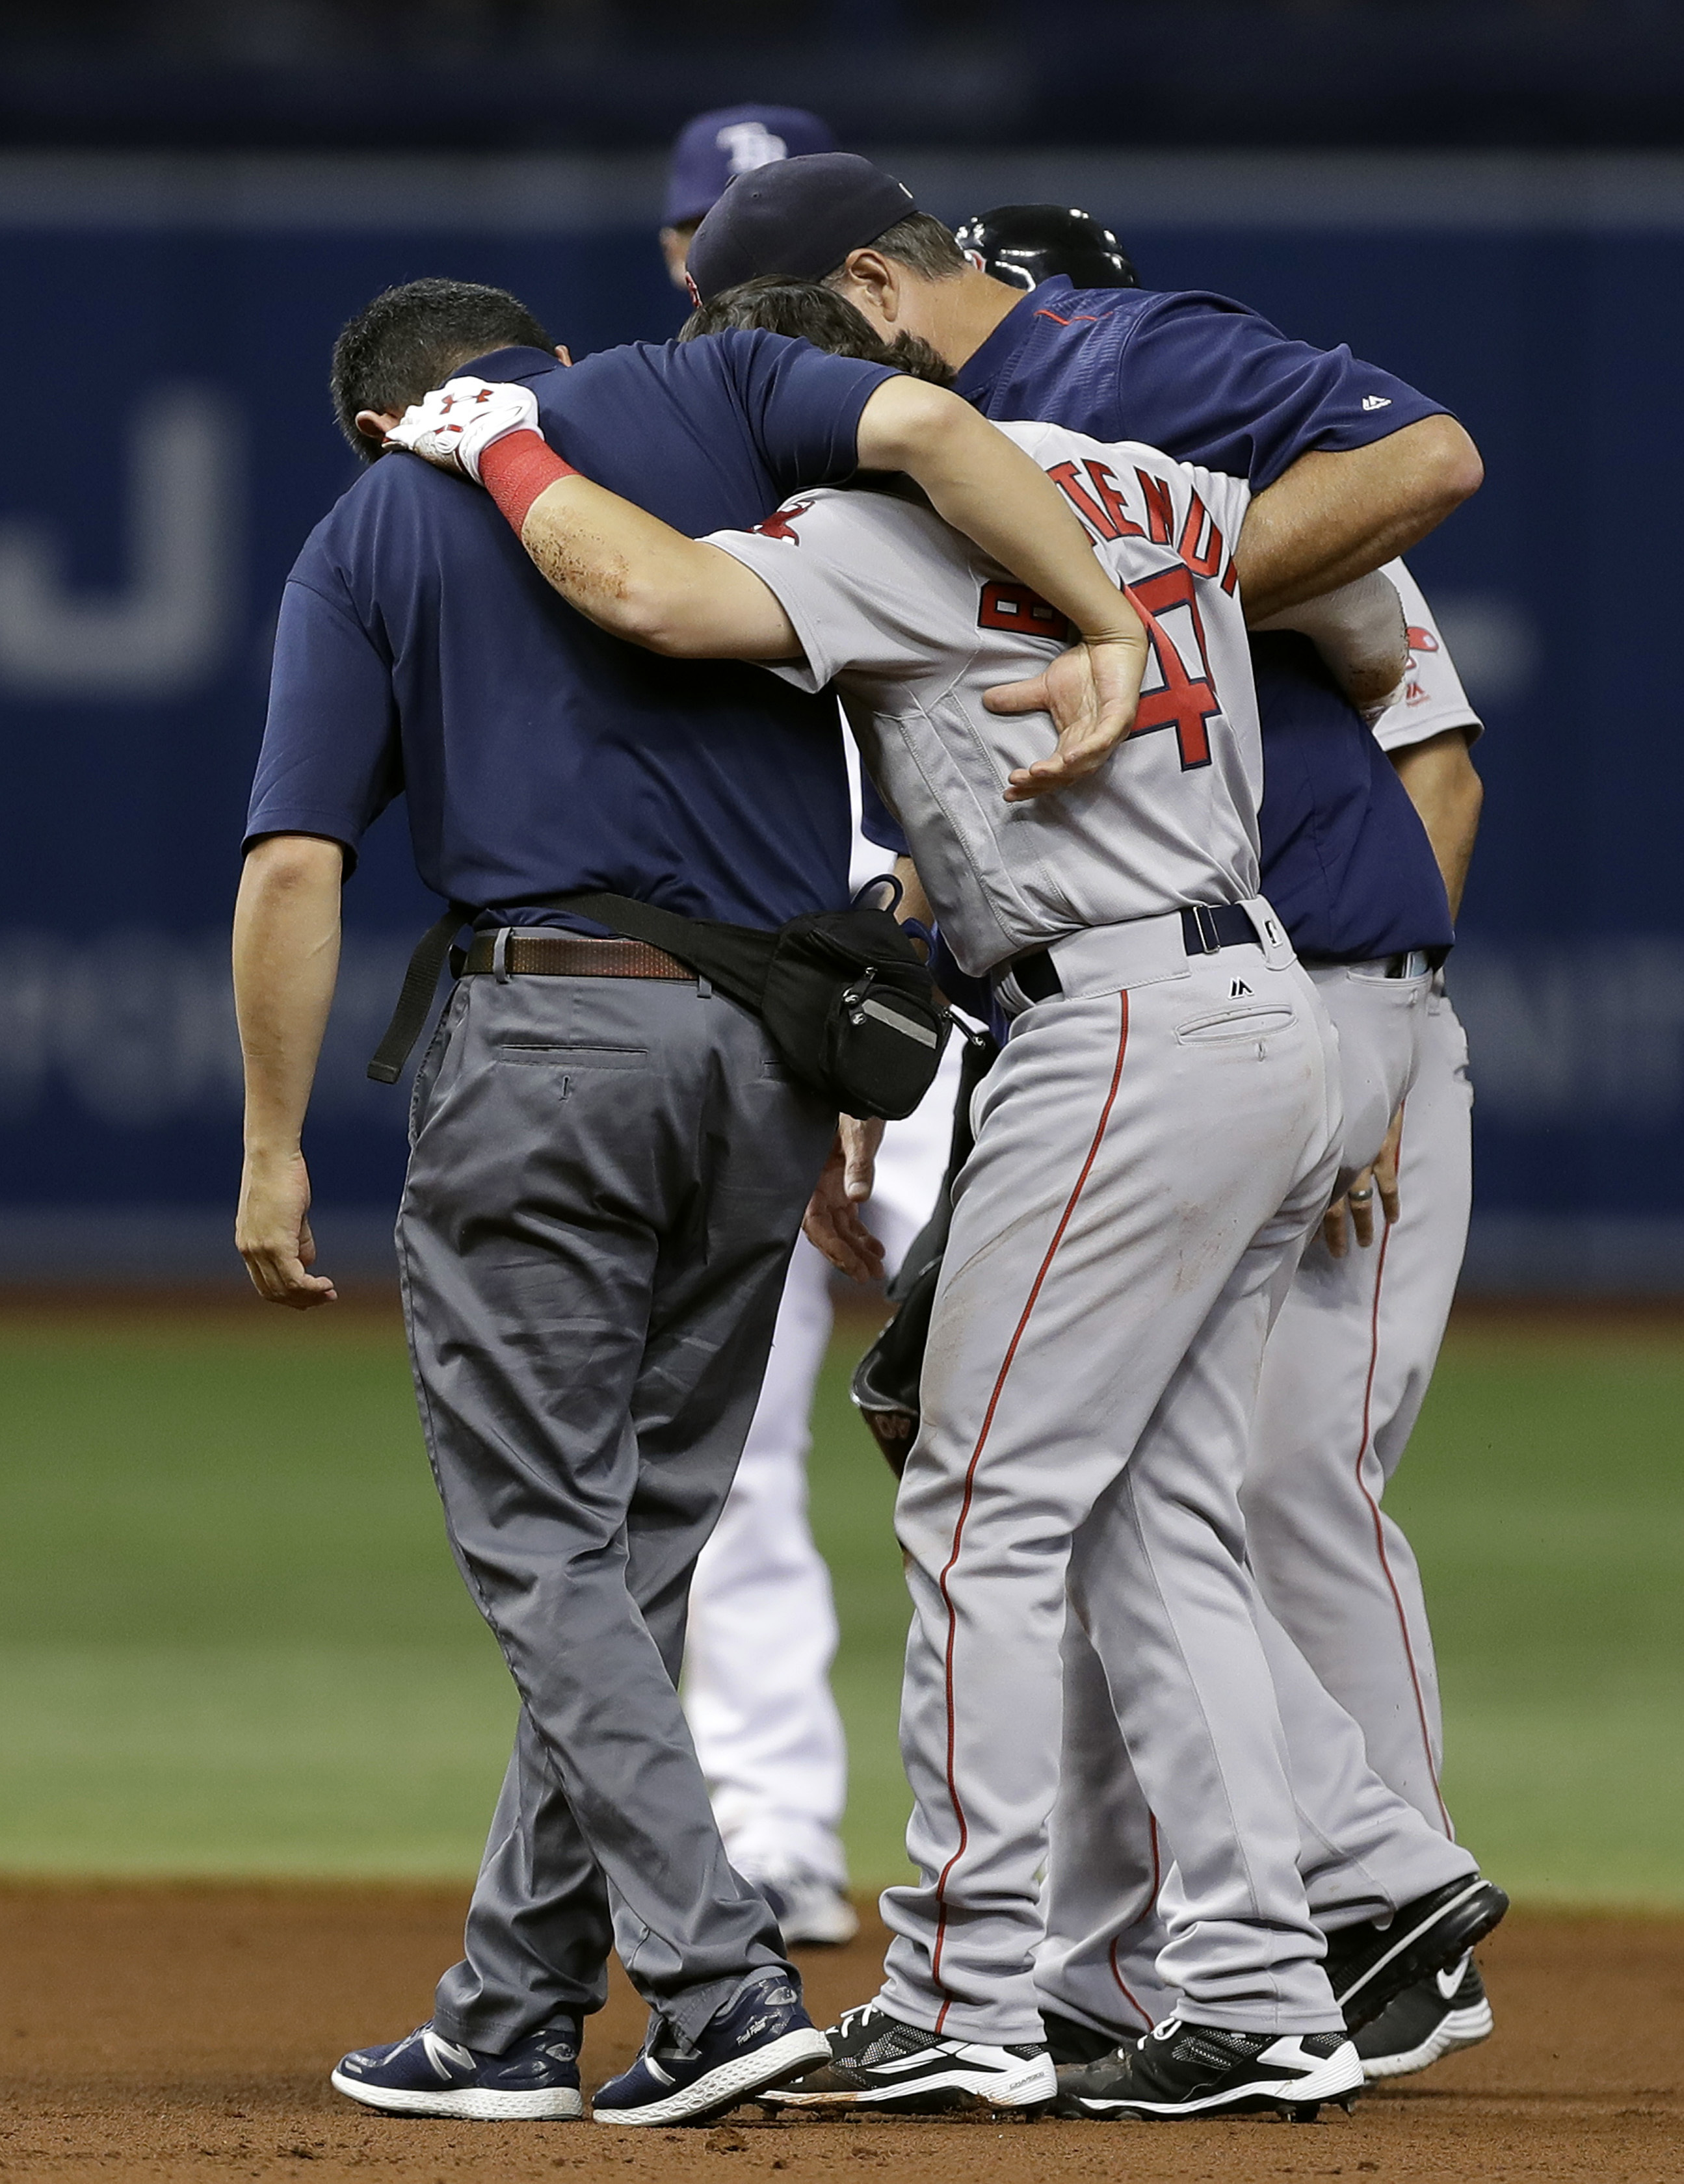 Boston Red Sox's Andrew Benintendi (40) is helped from the field after getting injured while being involved in a double play during the seventh inning of a baseball game Wednesday, Aug. 24, 2016, in St. Petersburg, Fla. Benintendi left the game. (AP Photo